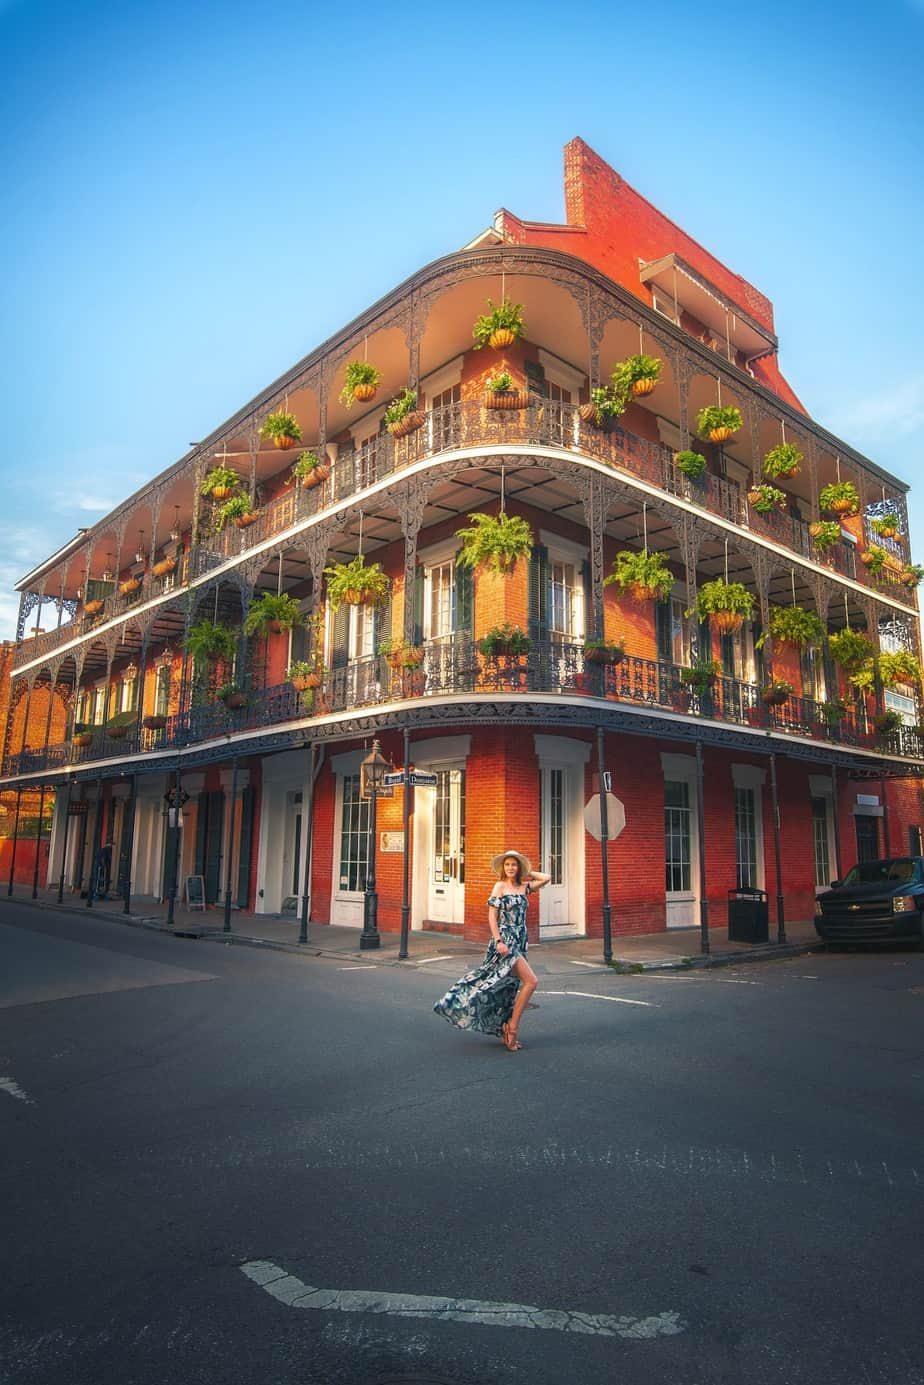 Stroll around the French Quarter on your 3 days In New Orleans